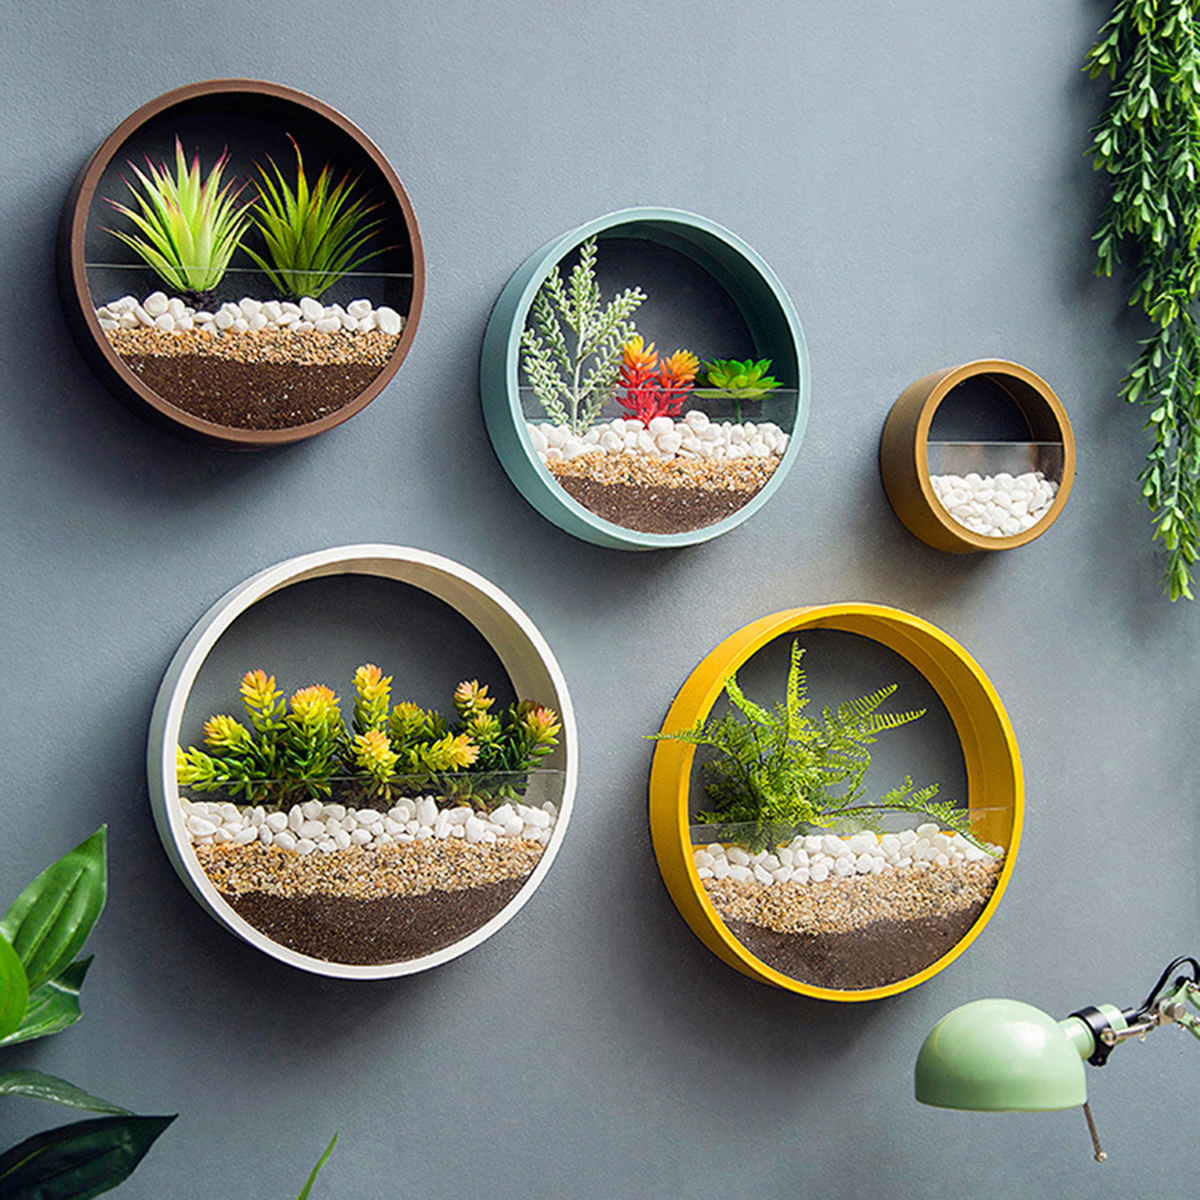 Morden Circle Iron Vase Decorative Wall Hanging Metal Plant Terrarium Round Glass Wall Planter Holder For Indoor Air Plants For Wall Decor Walmart Canada